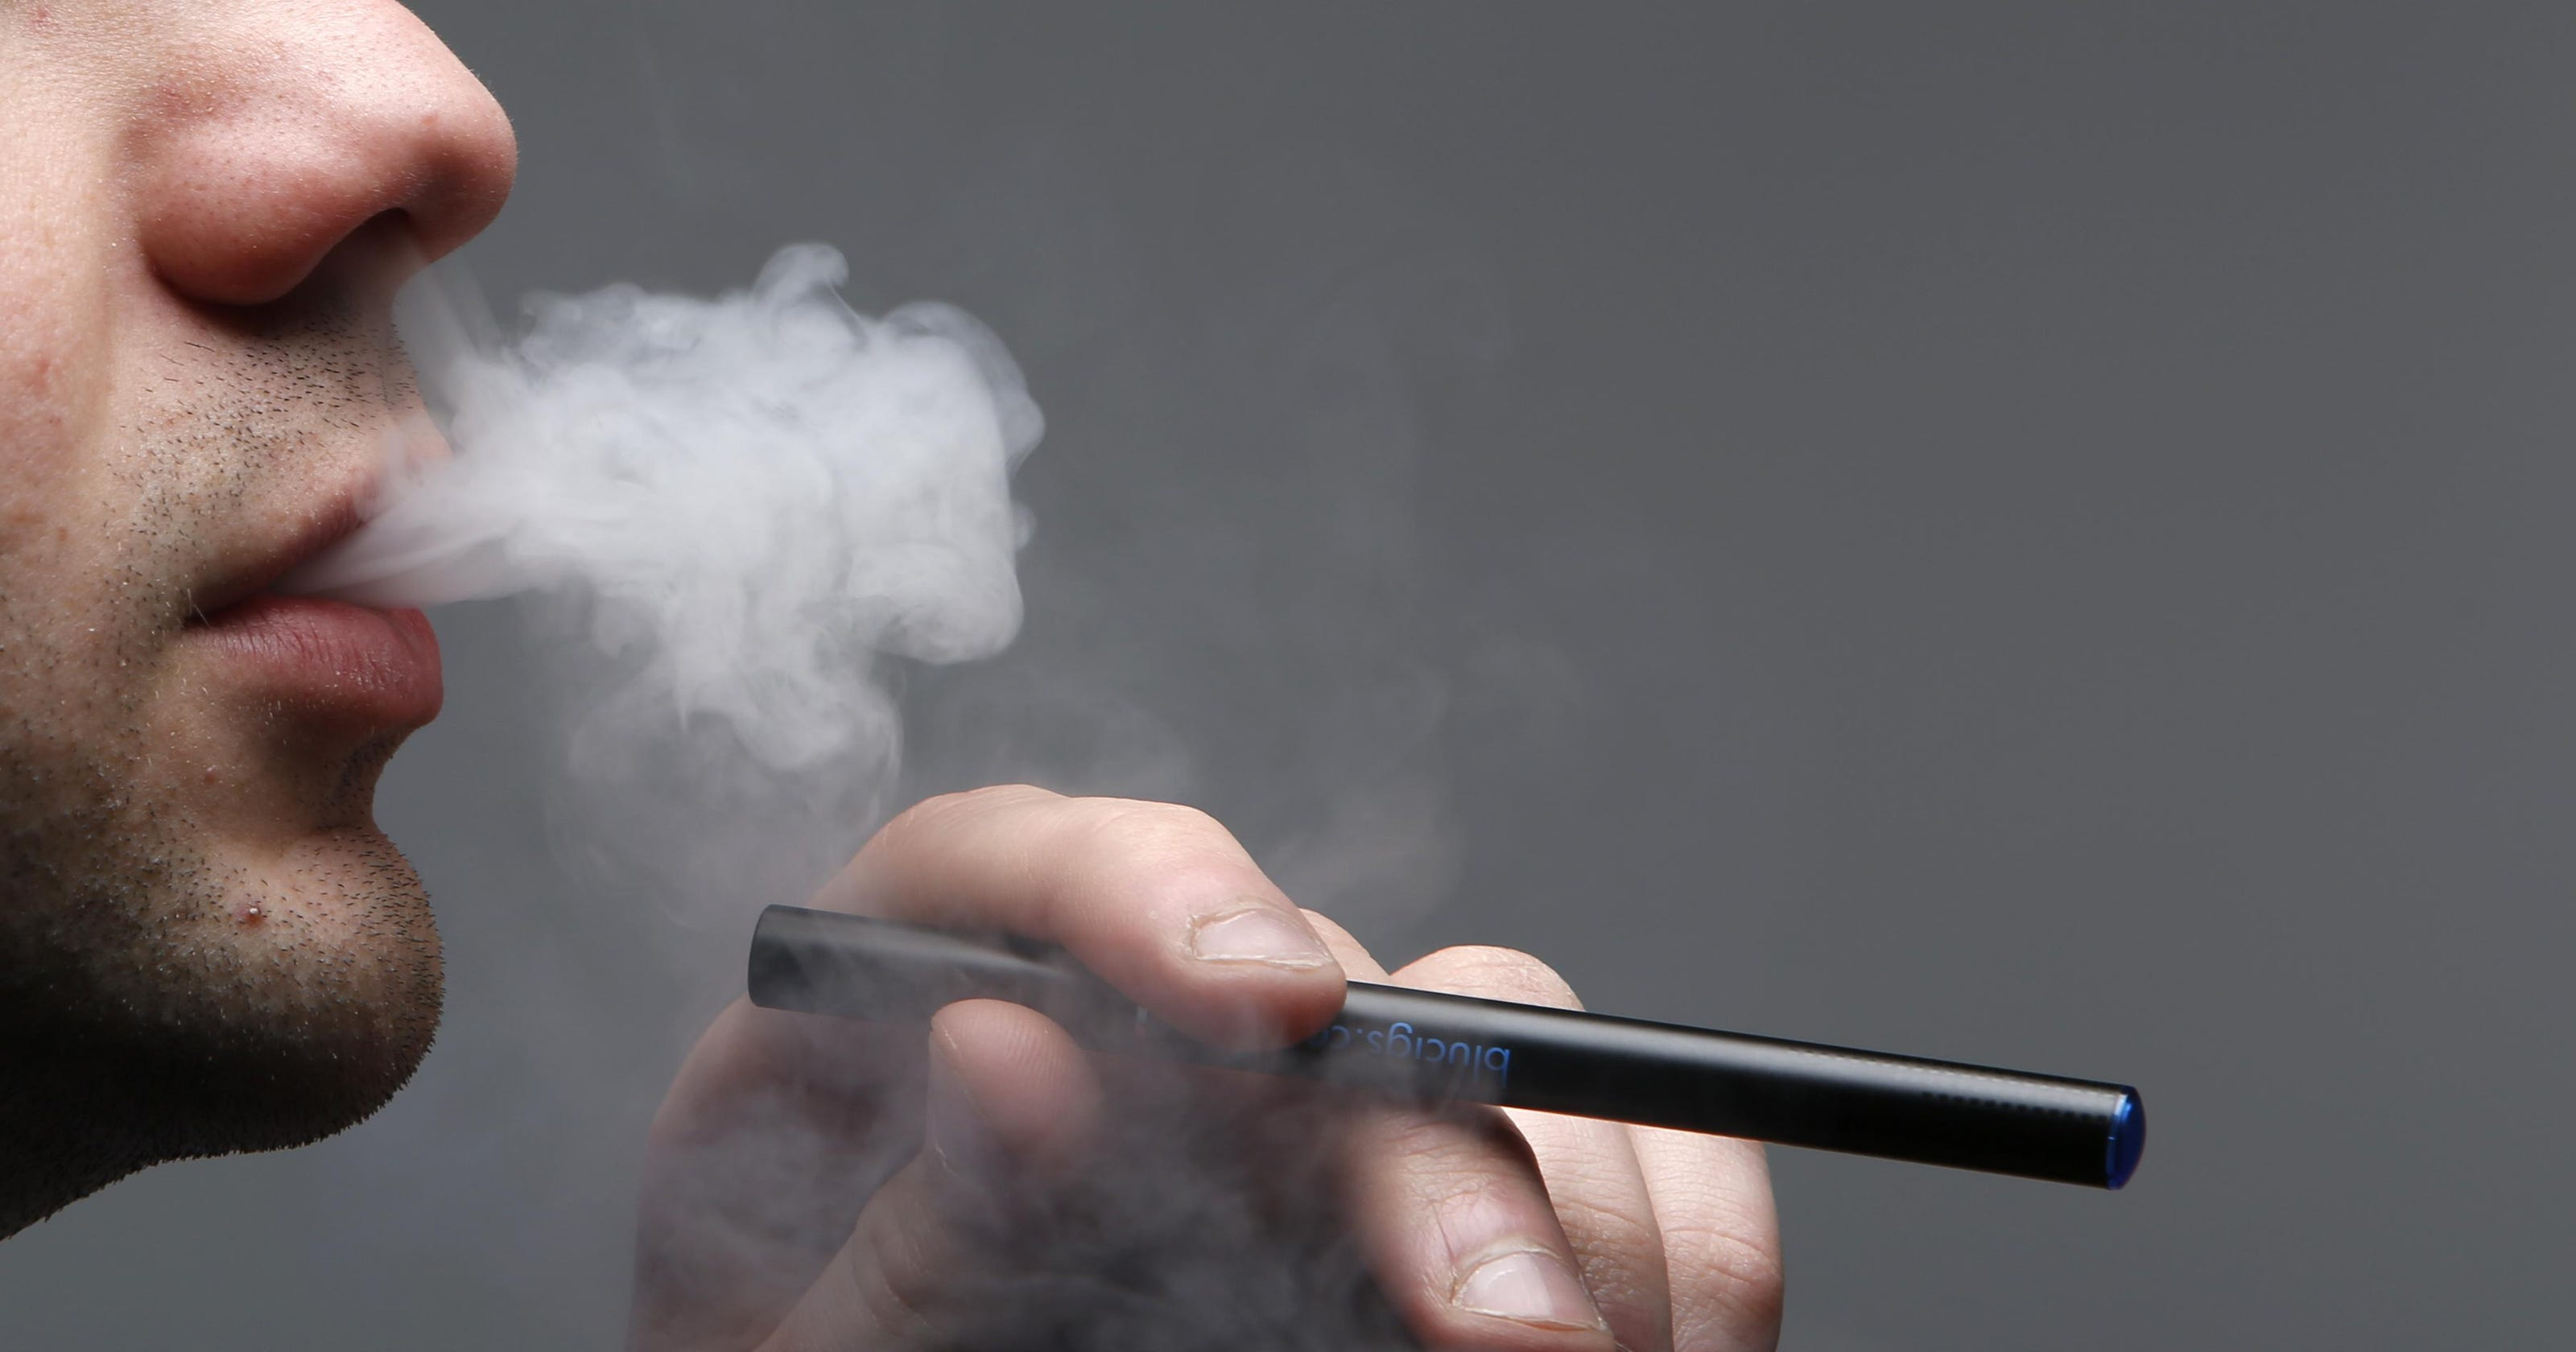 Cuomo's New York state budget plan takes aim at smoking and vaping